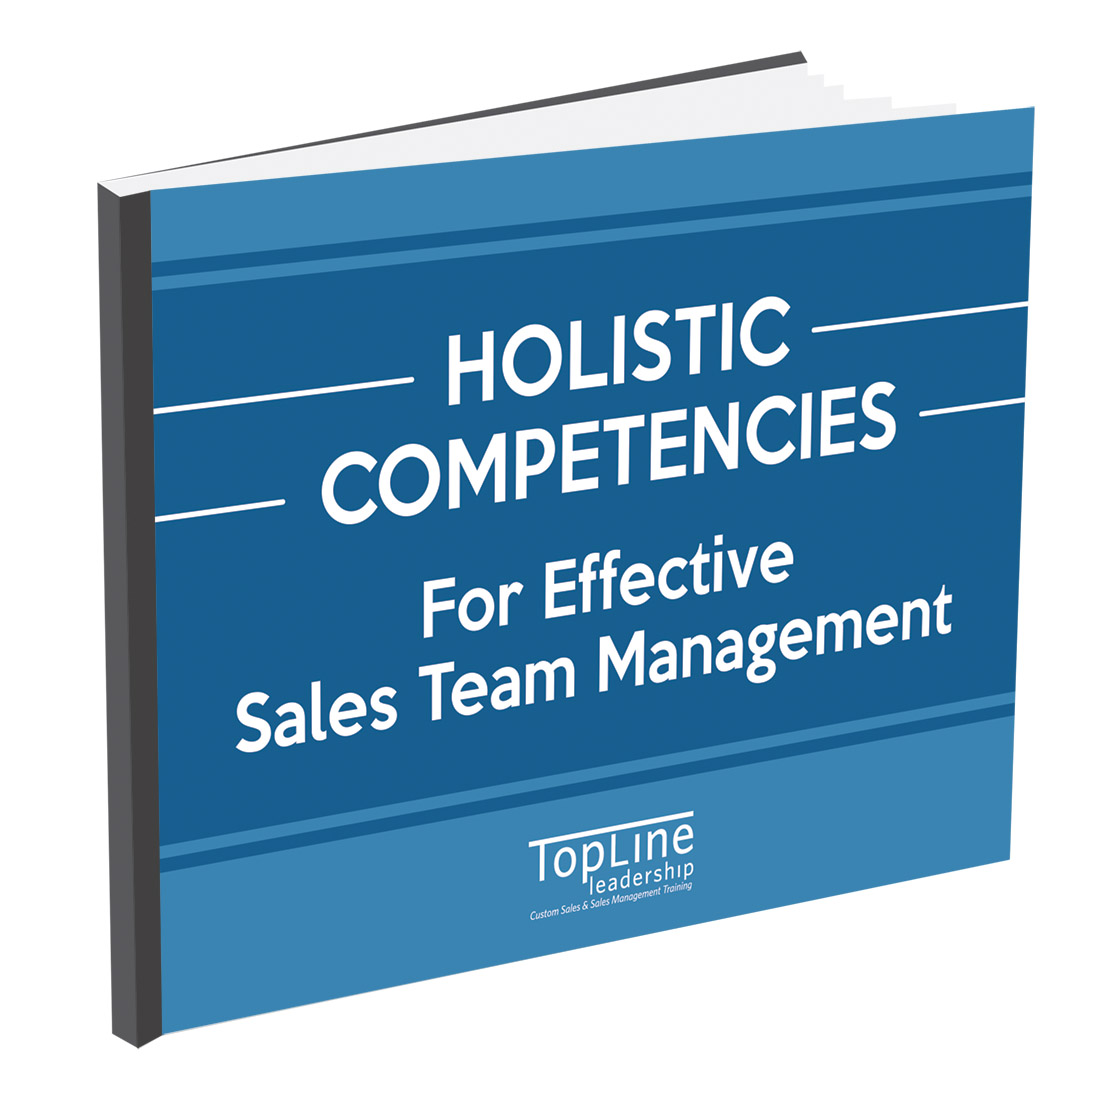 Holistic competencies for effective sales team management resources free download